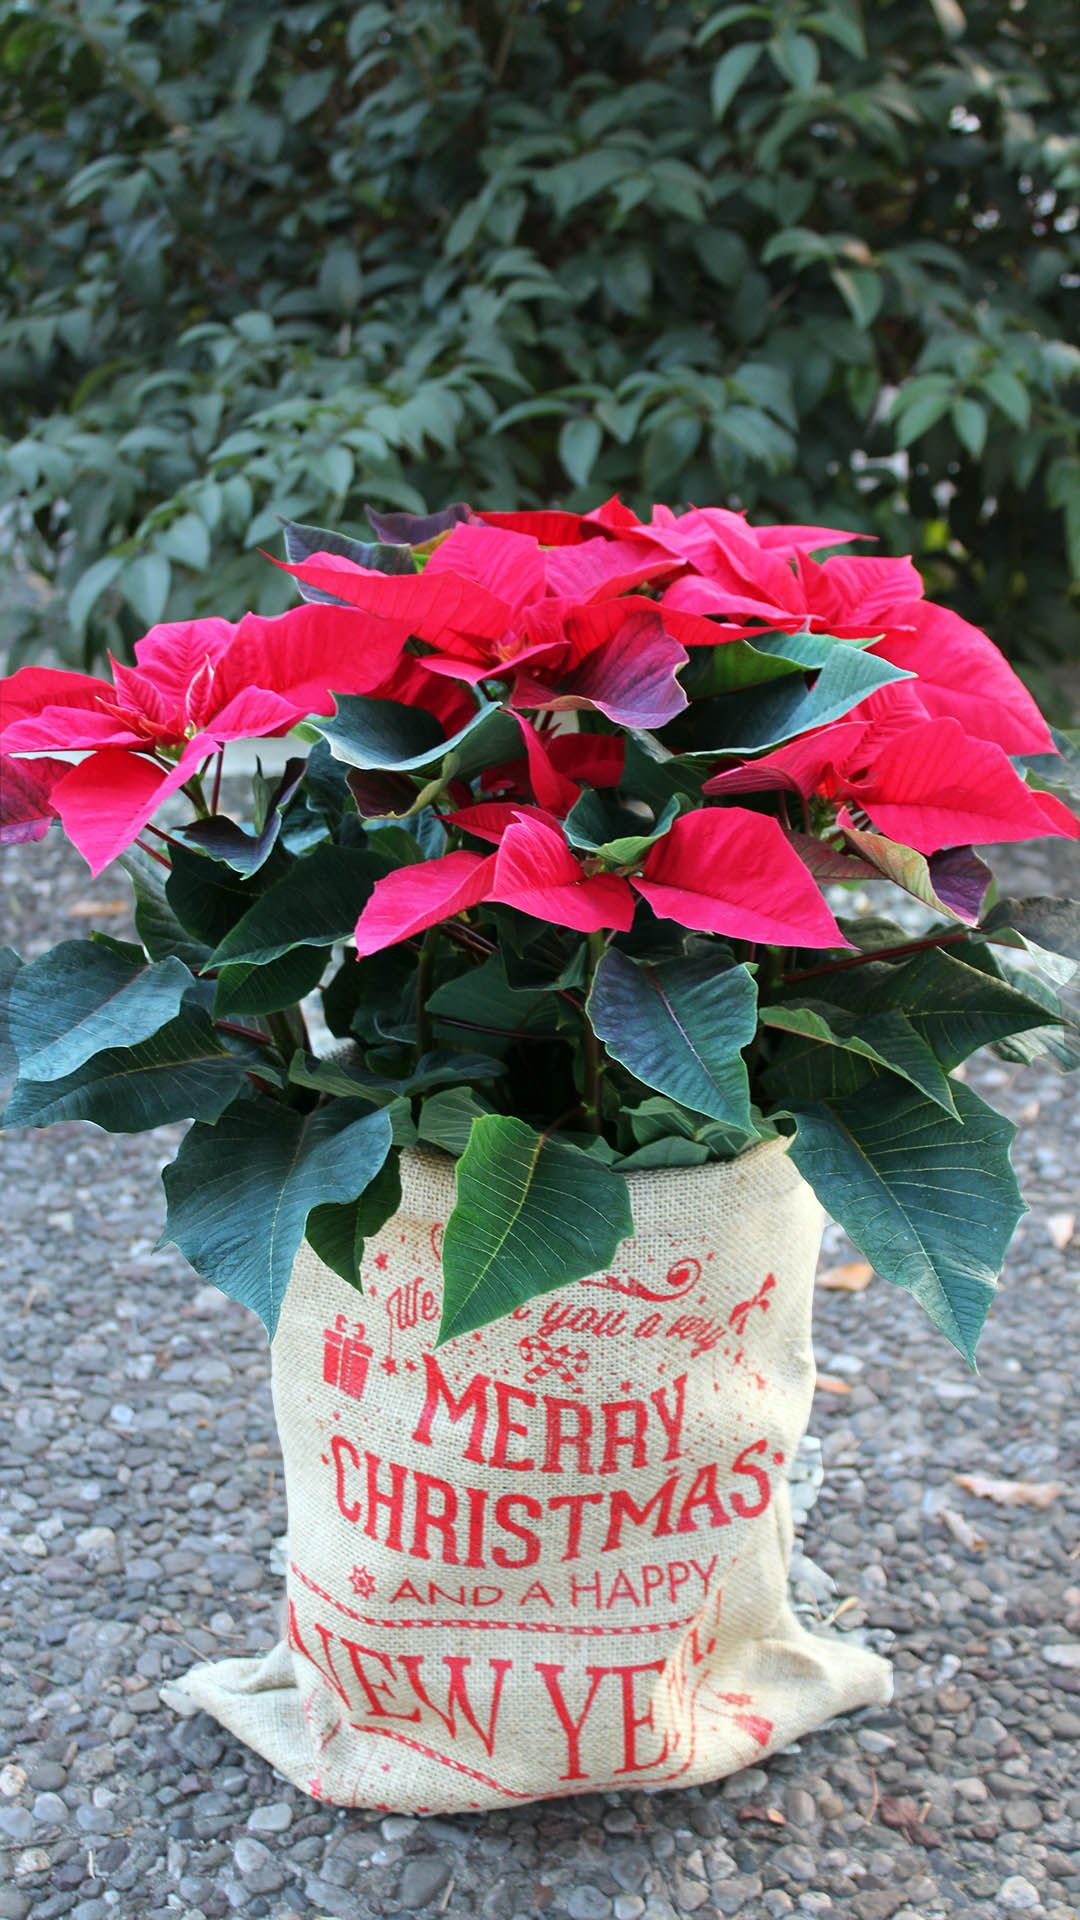 Our favorite plant, poinsettia, which has been named also